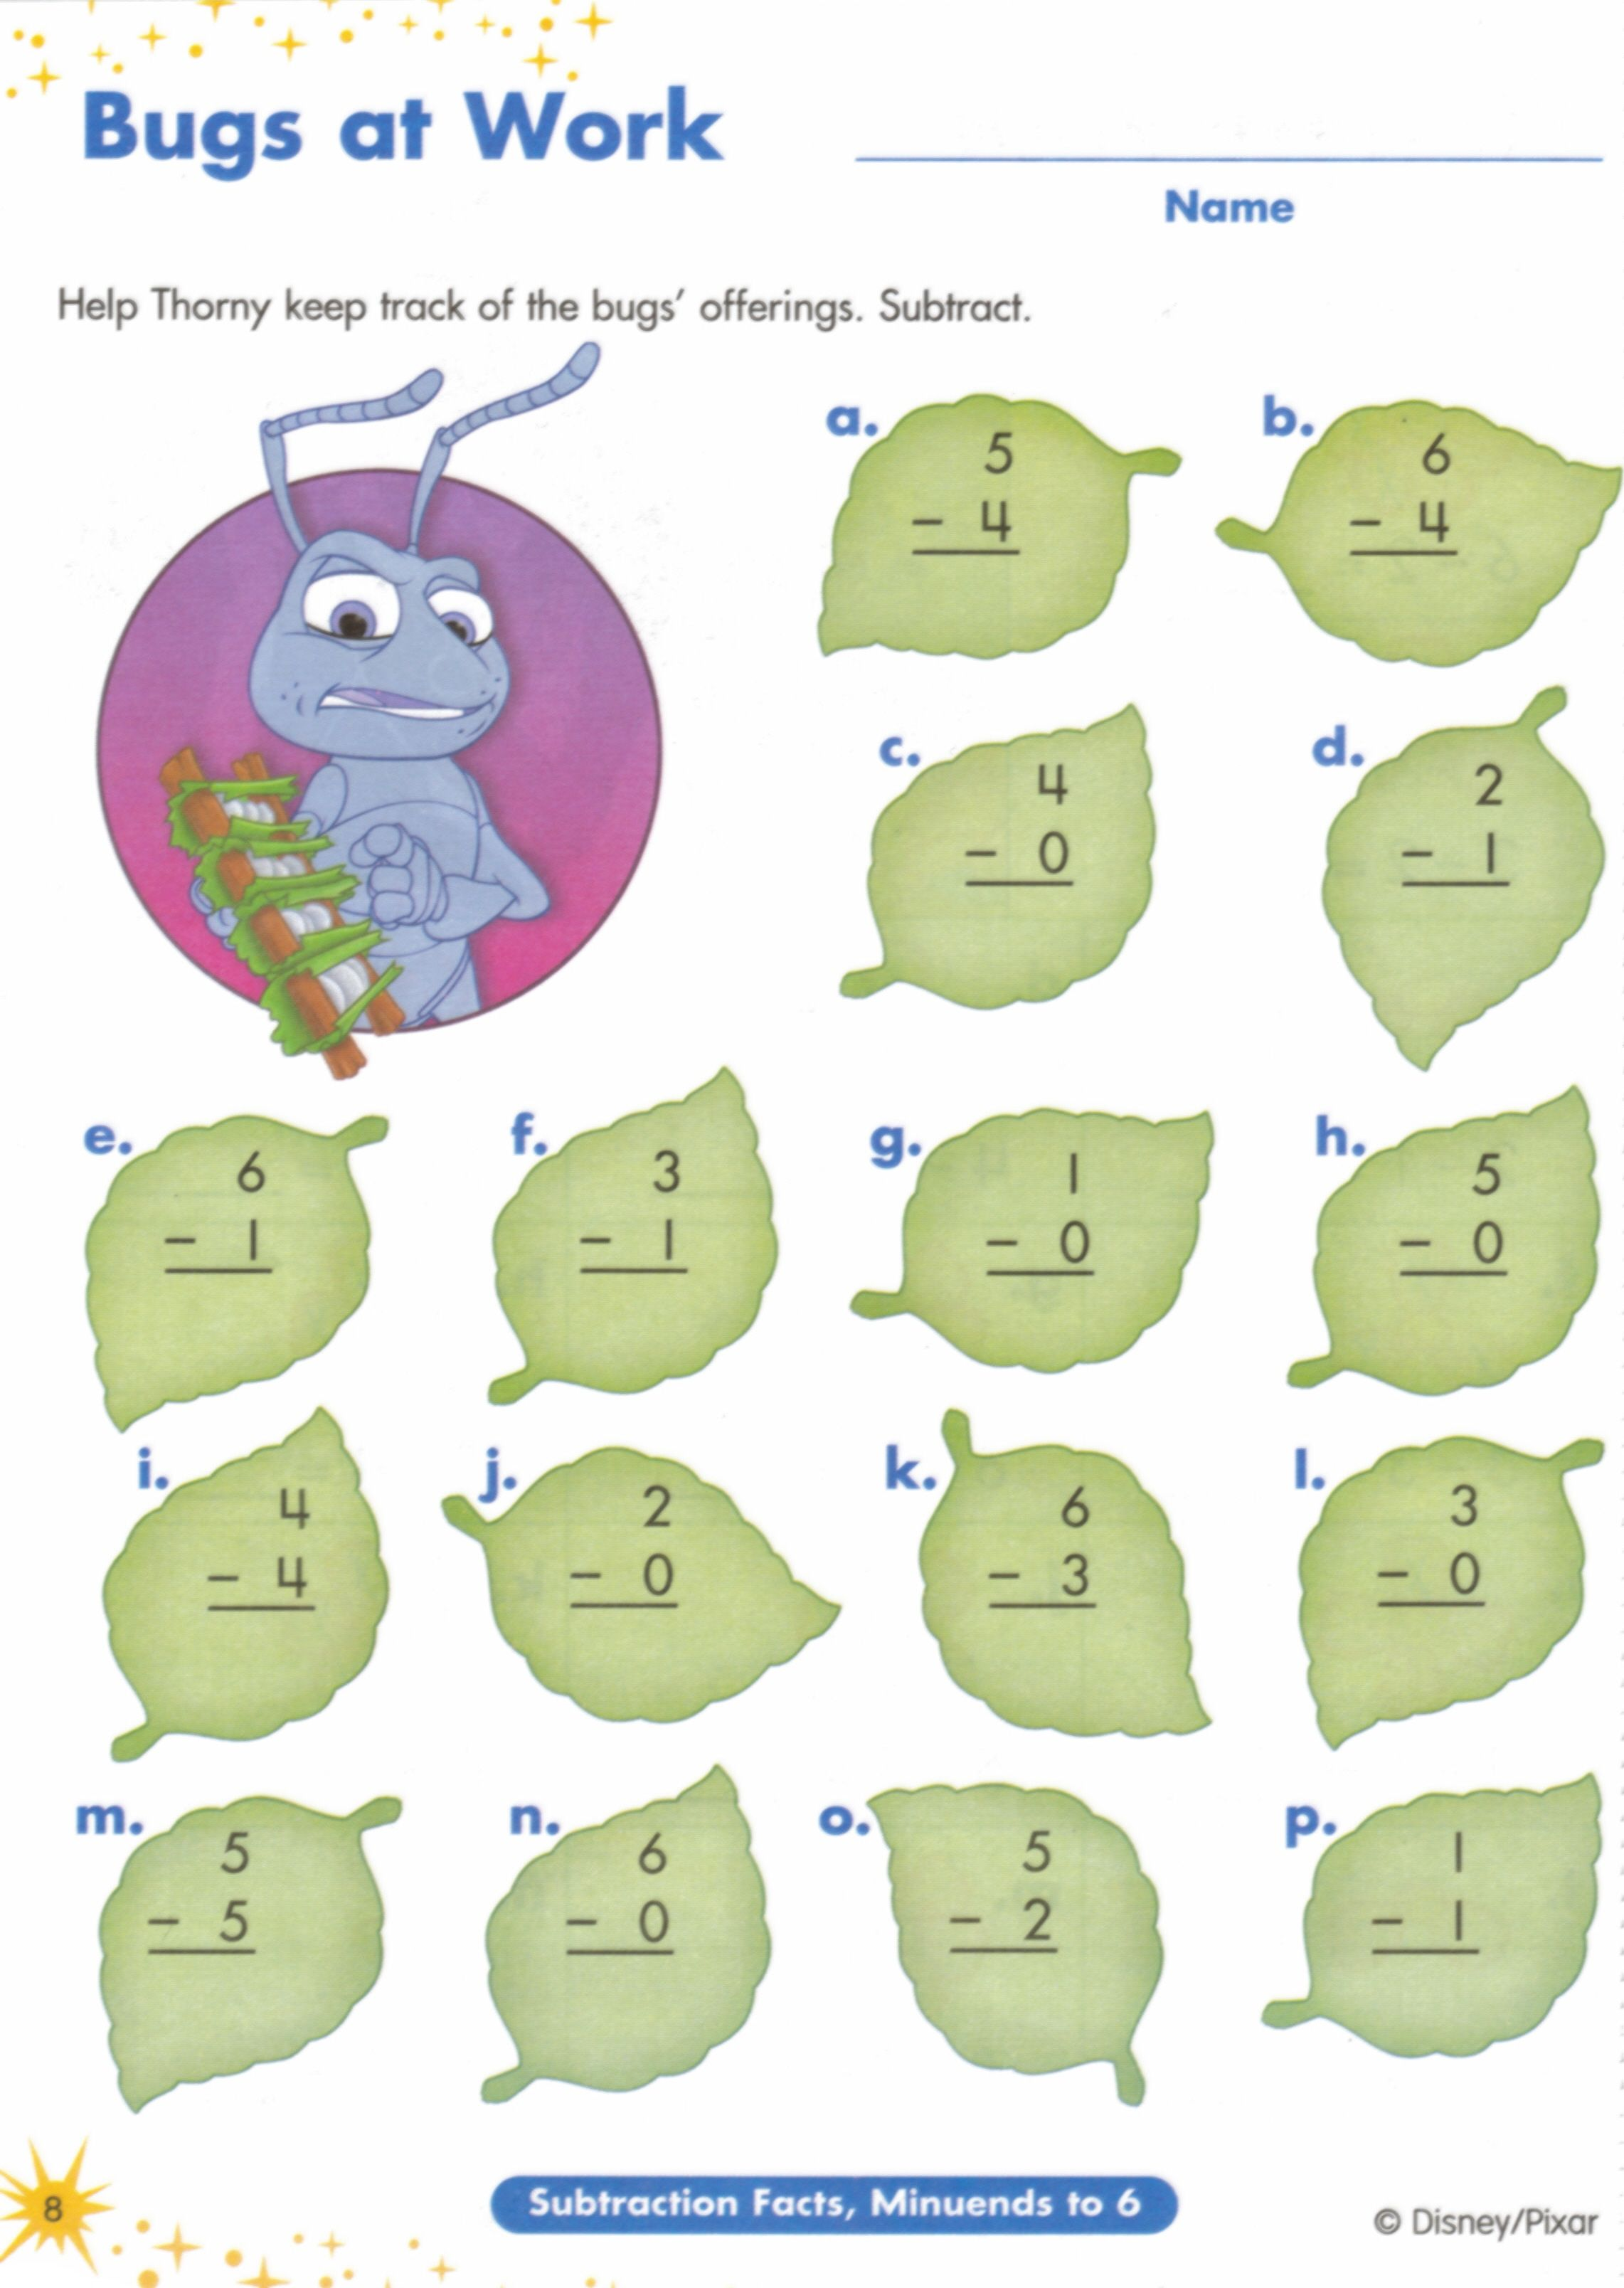 Proatmealus  Wonderful  Images About Worksheets On Pinterest  Fun Facts For Kids  With Exciting  Images About Worksheets On Pinterest  Fun Facts For Kids Earth Day Worksheets And Jungles With Cute Percentages Worksheets Ks Also Math Worksheets Patterns And Sequences In Addition Emotion Worksheets For Children And D Geometry Worksheets As Well As Sense Organs For Kids Worksheet Additionally Worksheet On Rhyming Words From Pinterestcom With Proatmealus  Exciting  Images About Worksheets On Pinterest  Fun Facts For Kids  With Cute  Images About Worksheets On Pinterest  Fun Facts For Kids Earth Day Worksheets And Jungles And Wonderful Percentages Worksheets Ks Also Math Worksheets Patterns And Sequences In Addition Emotion Worksheets For Children From Pinterestcom